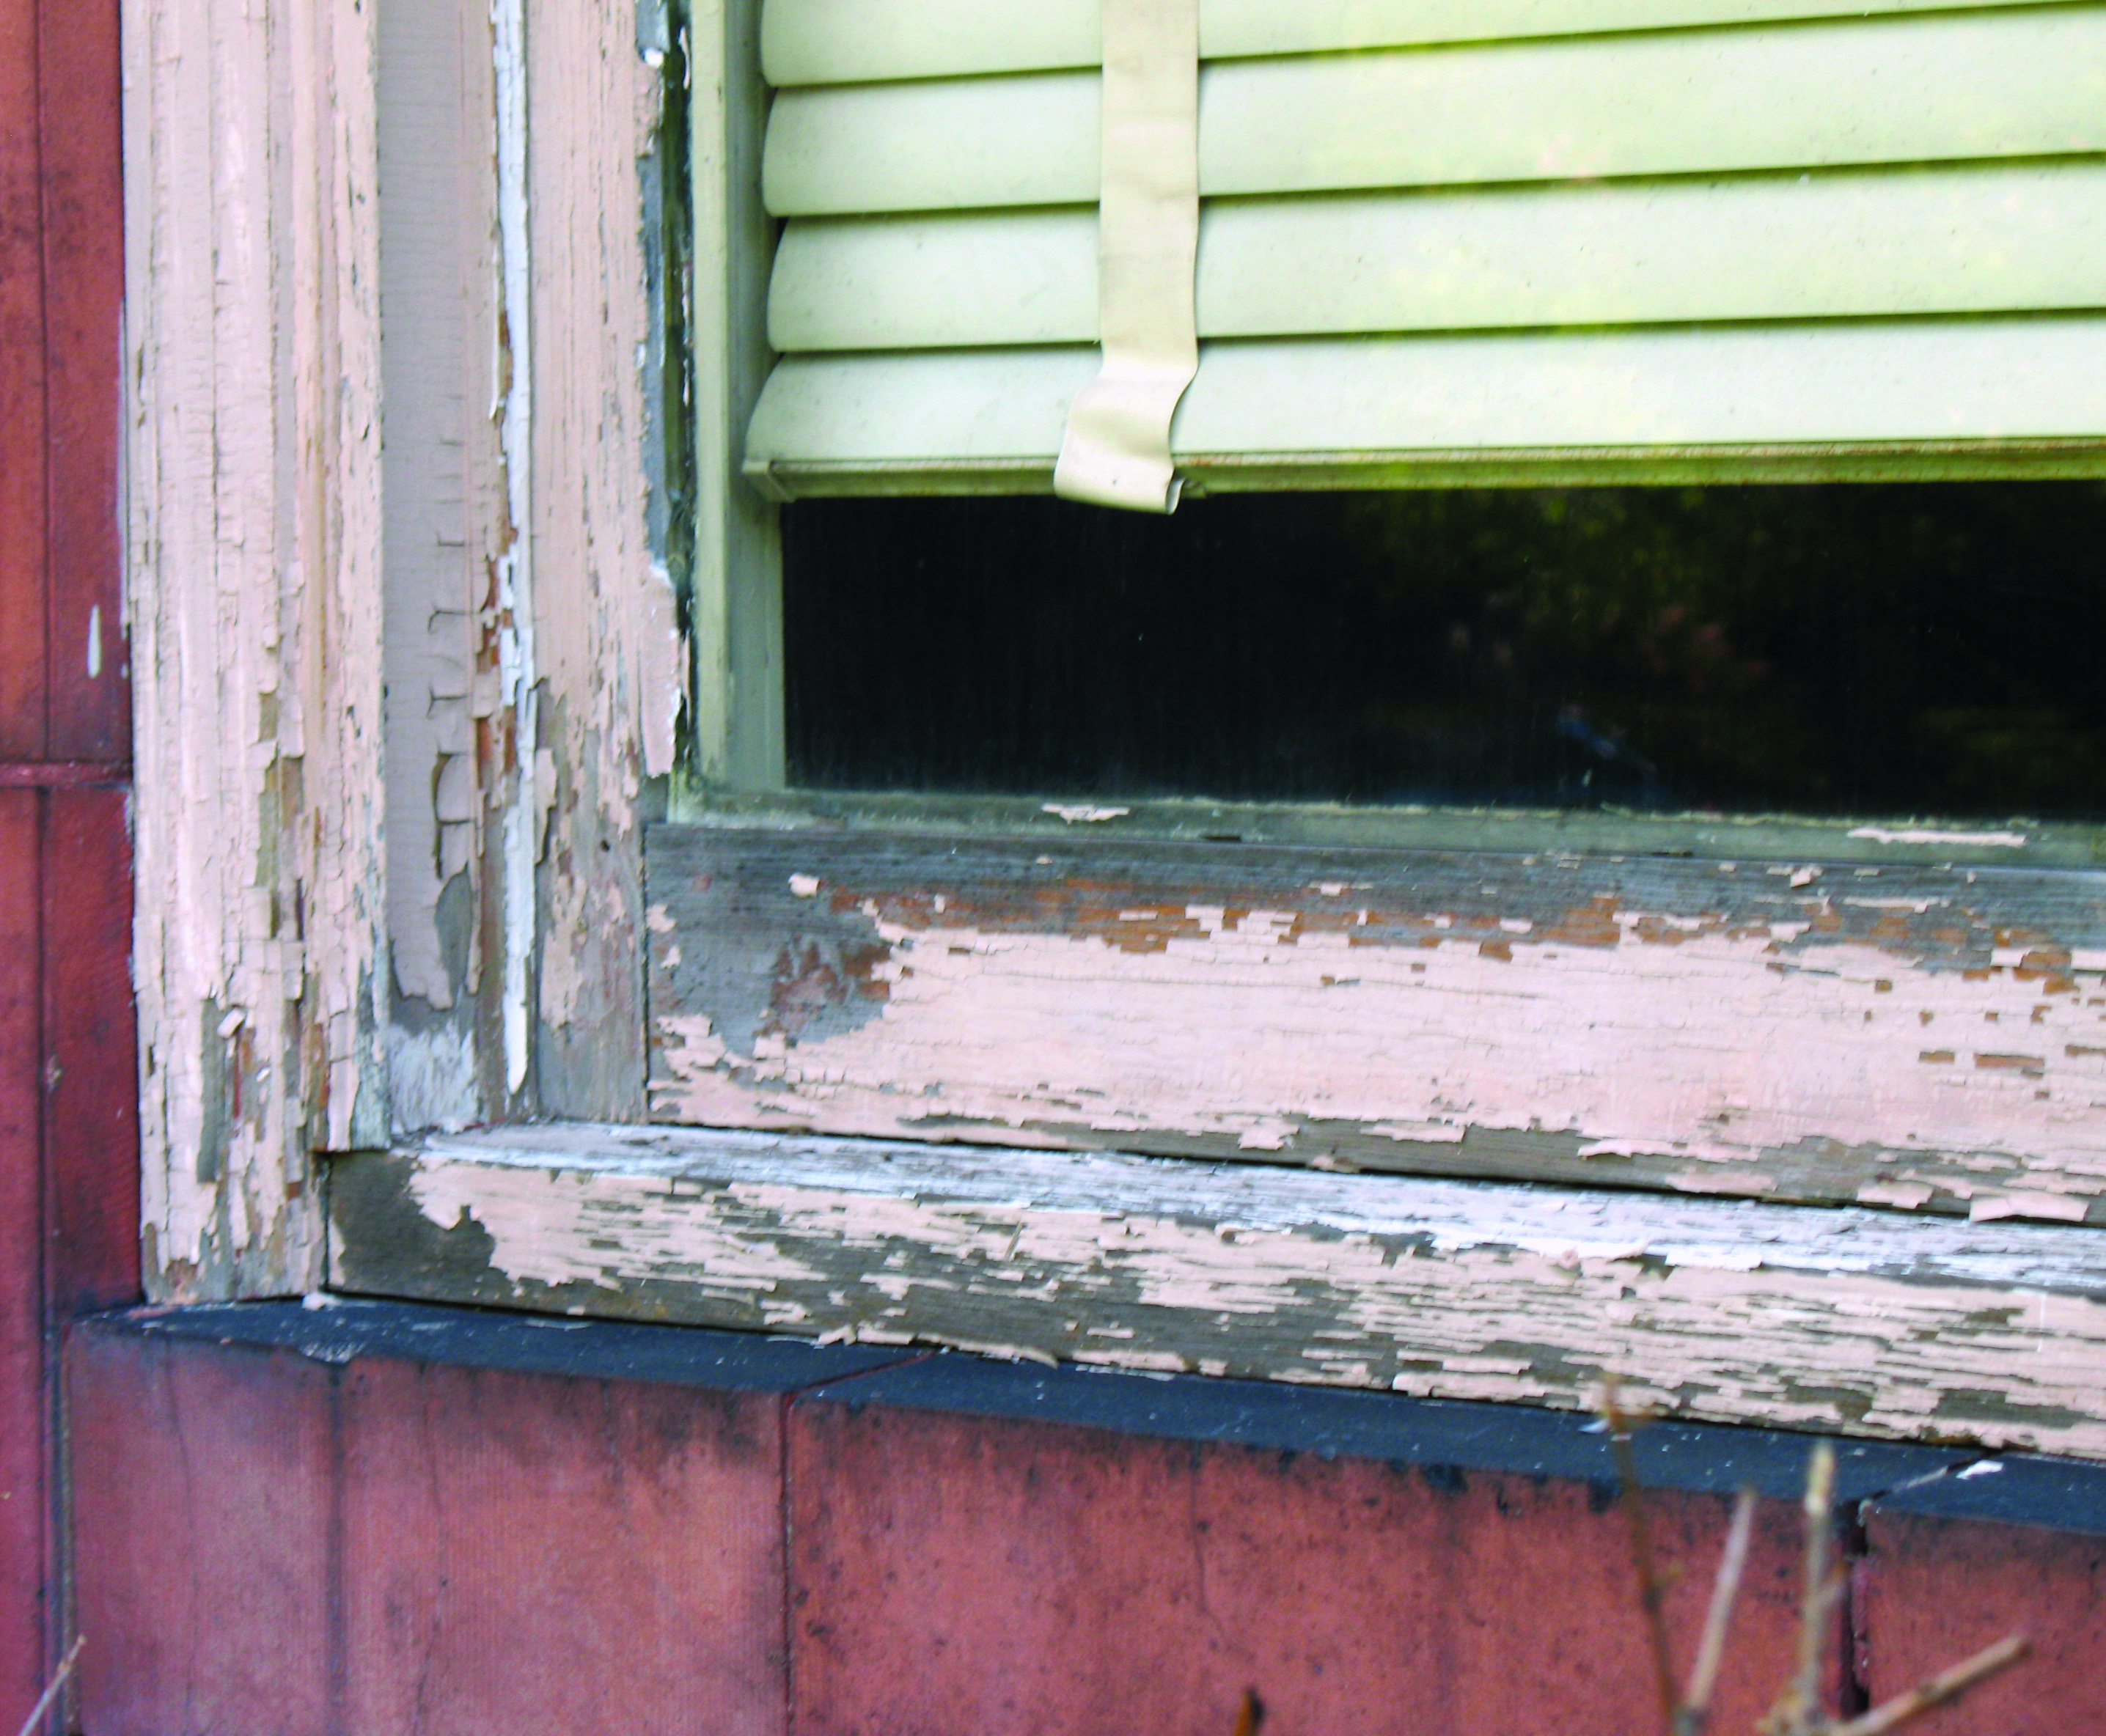 Top 5 Questions Our Customers Ask About Vinyl Replacement Windows